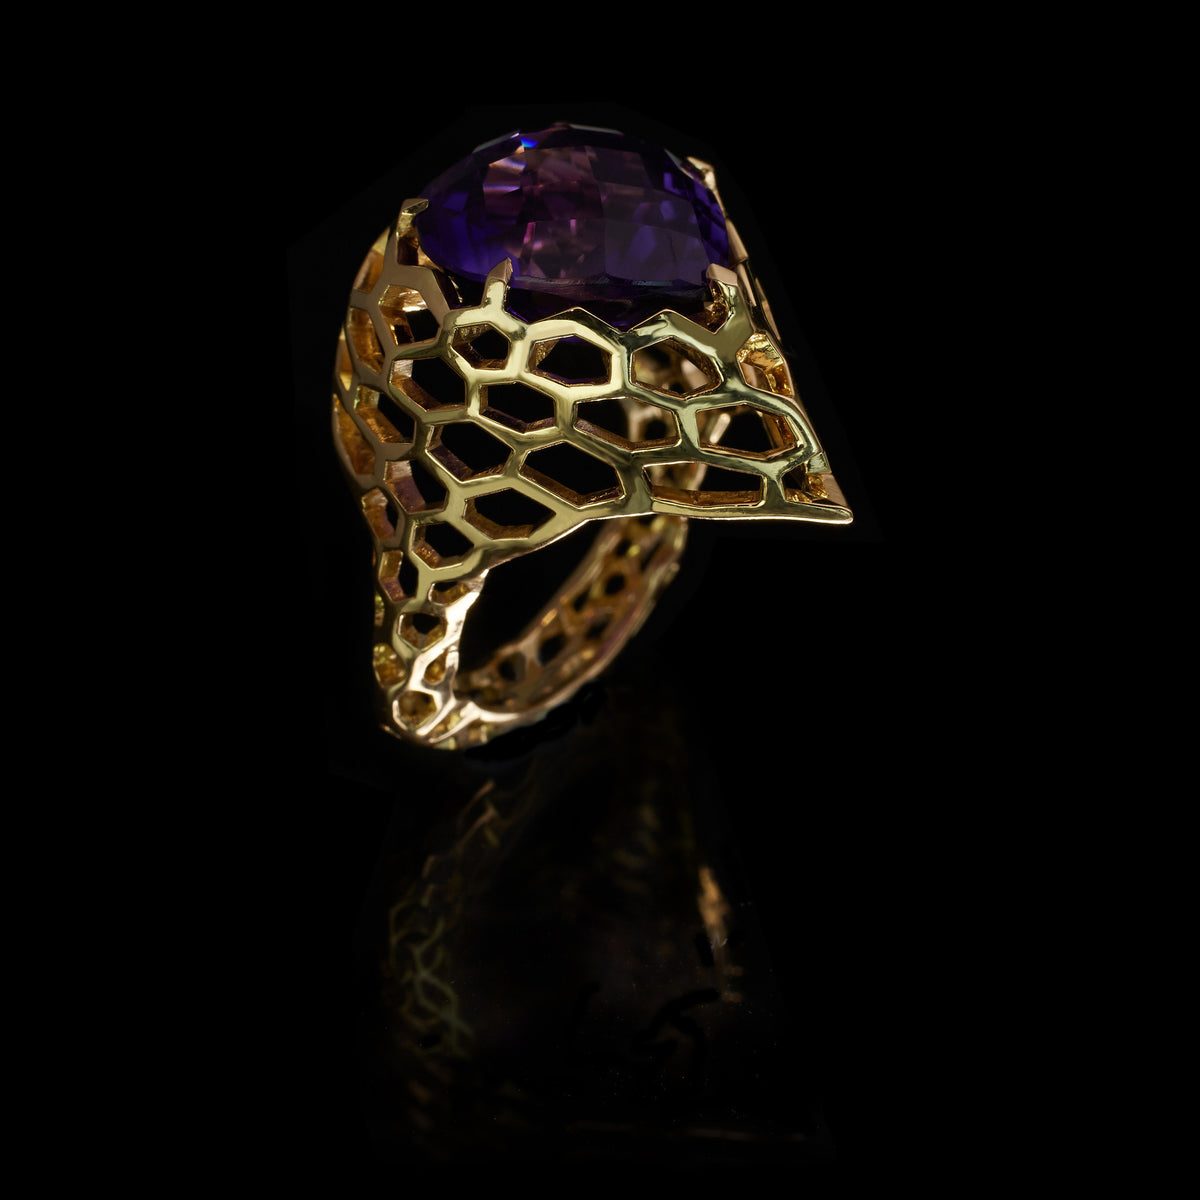 Cellular Crested Cocktail Ring